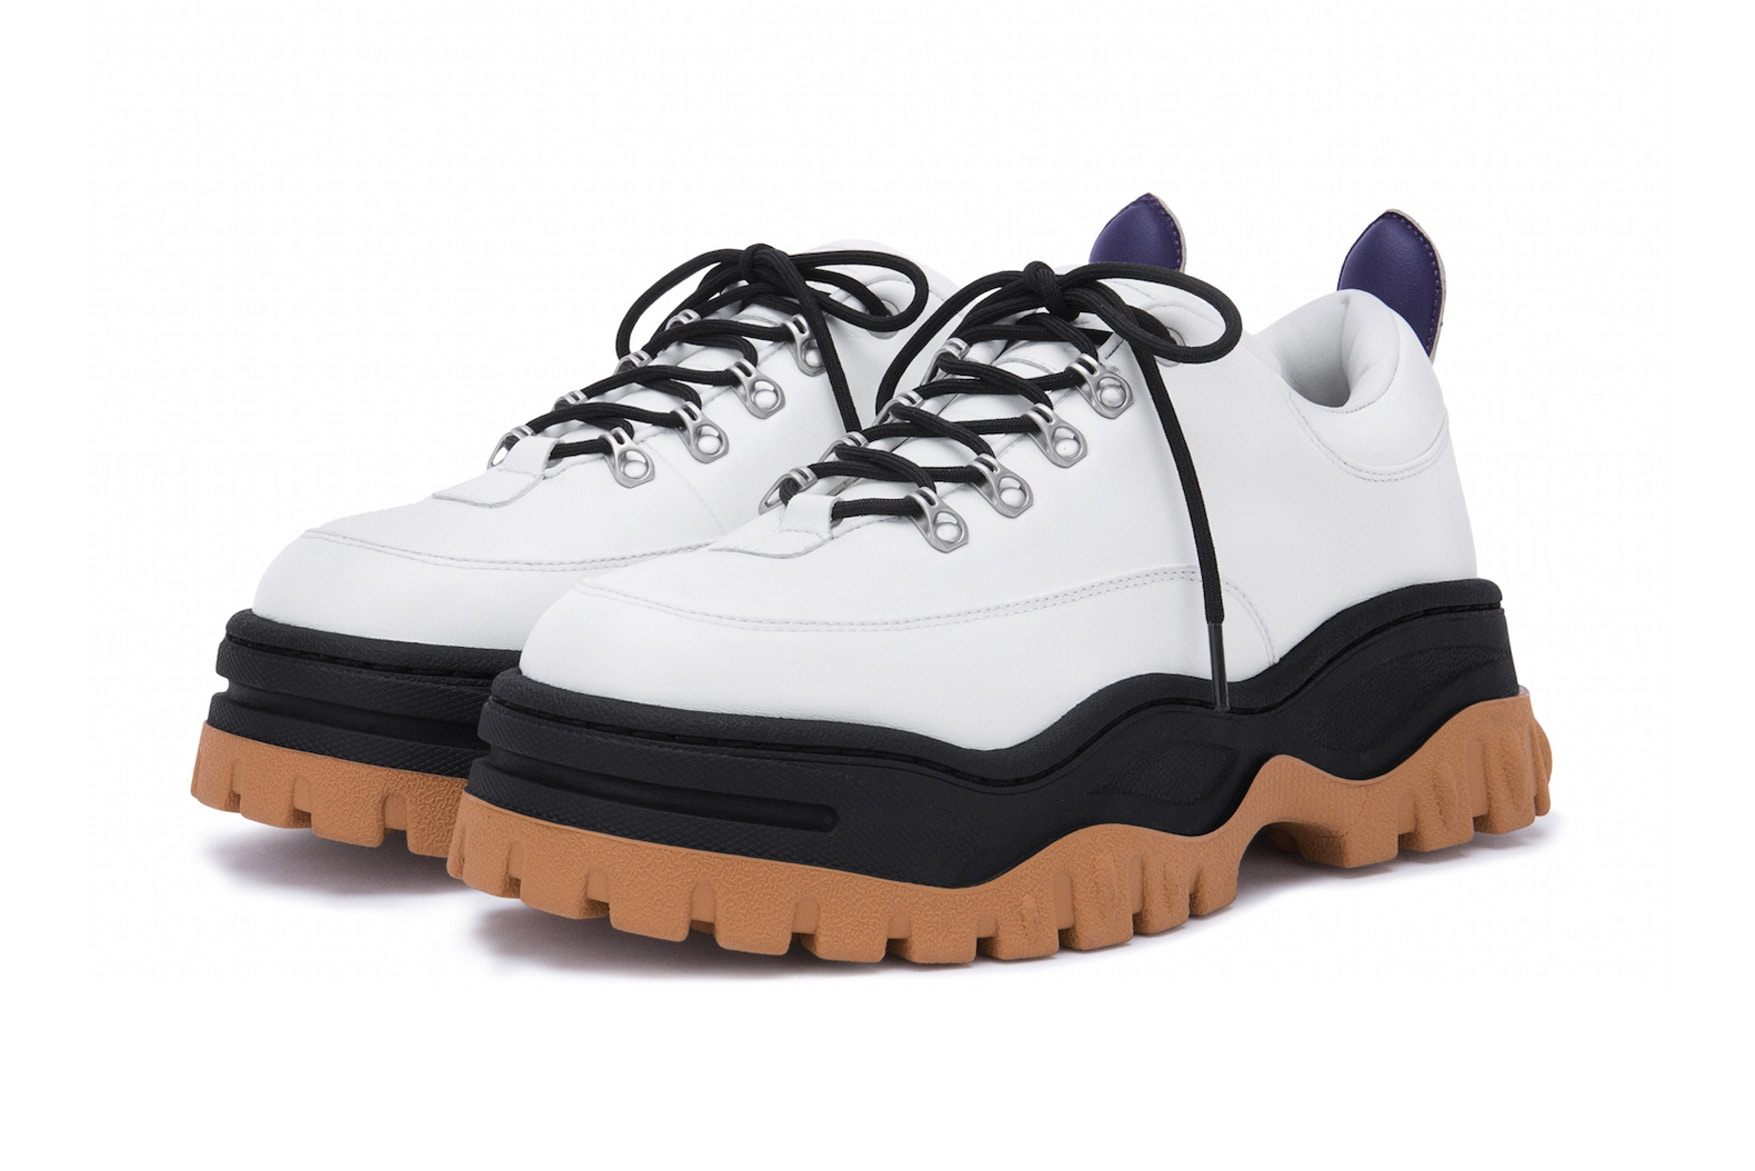 EYTYS All-New Angel LWBG Sneaker is Now Live